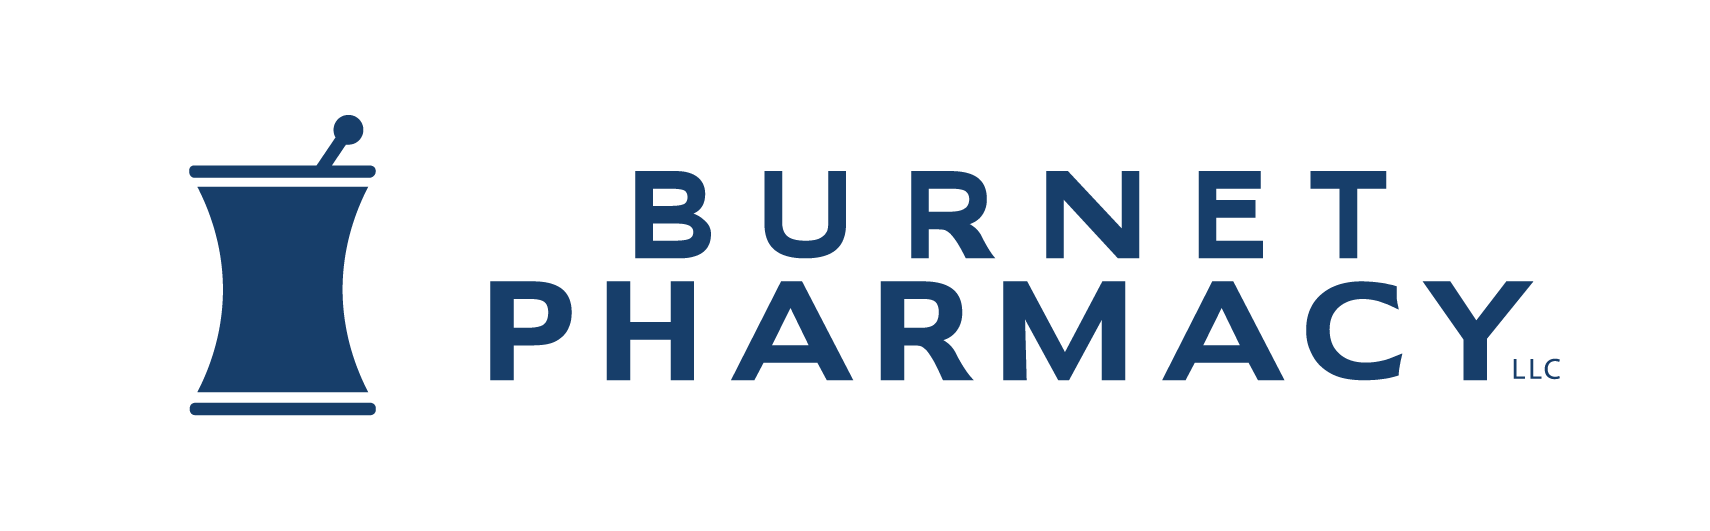 Burnet Pharmacy